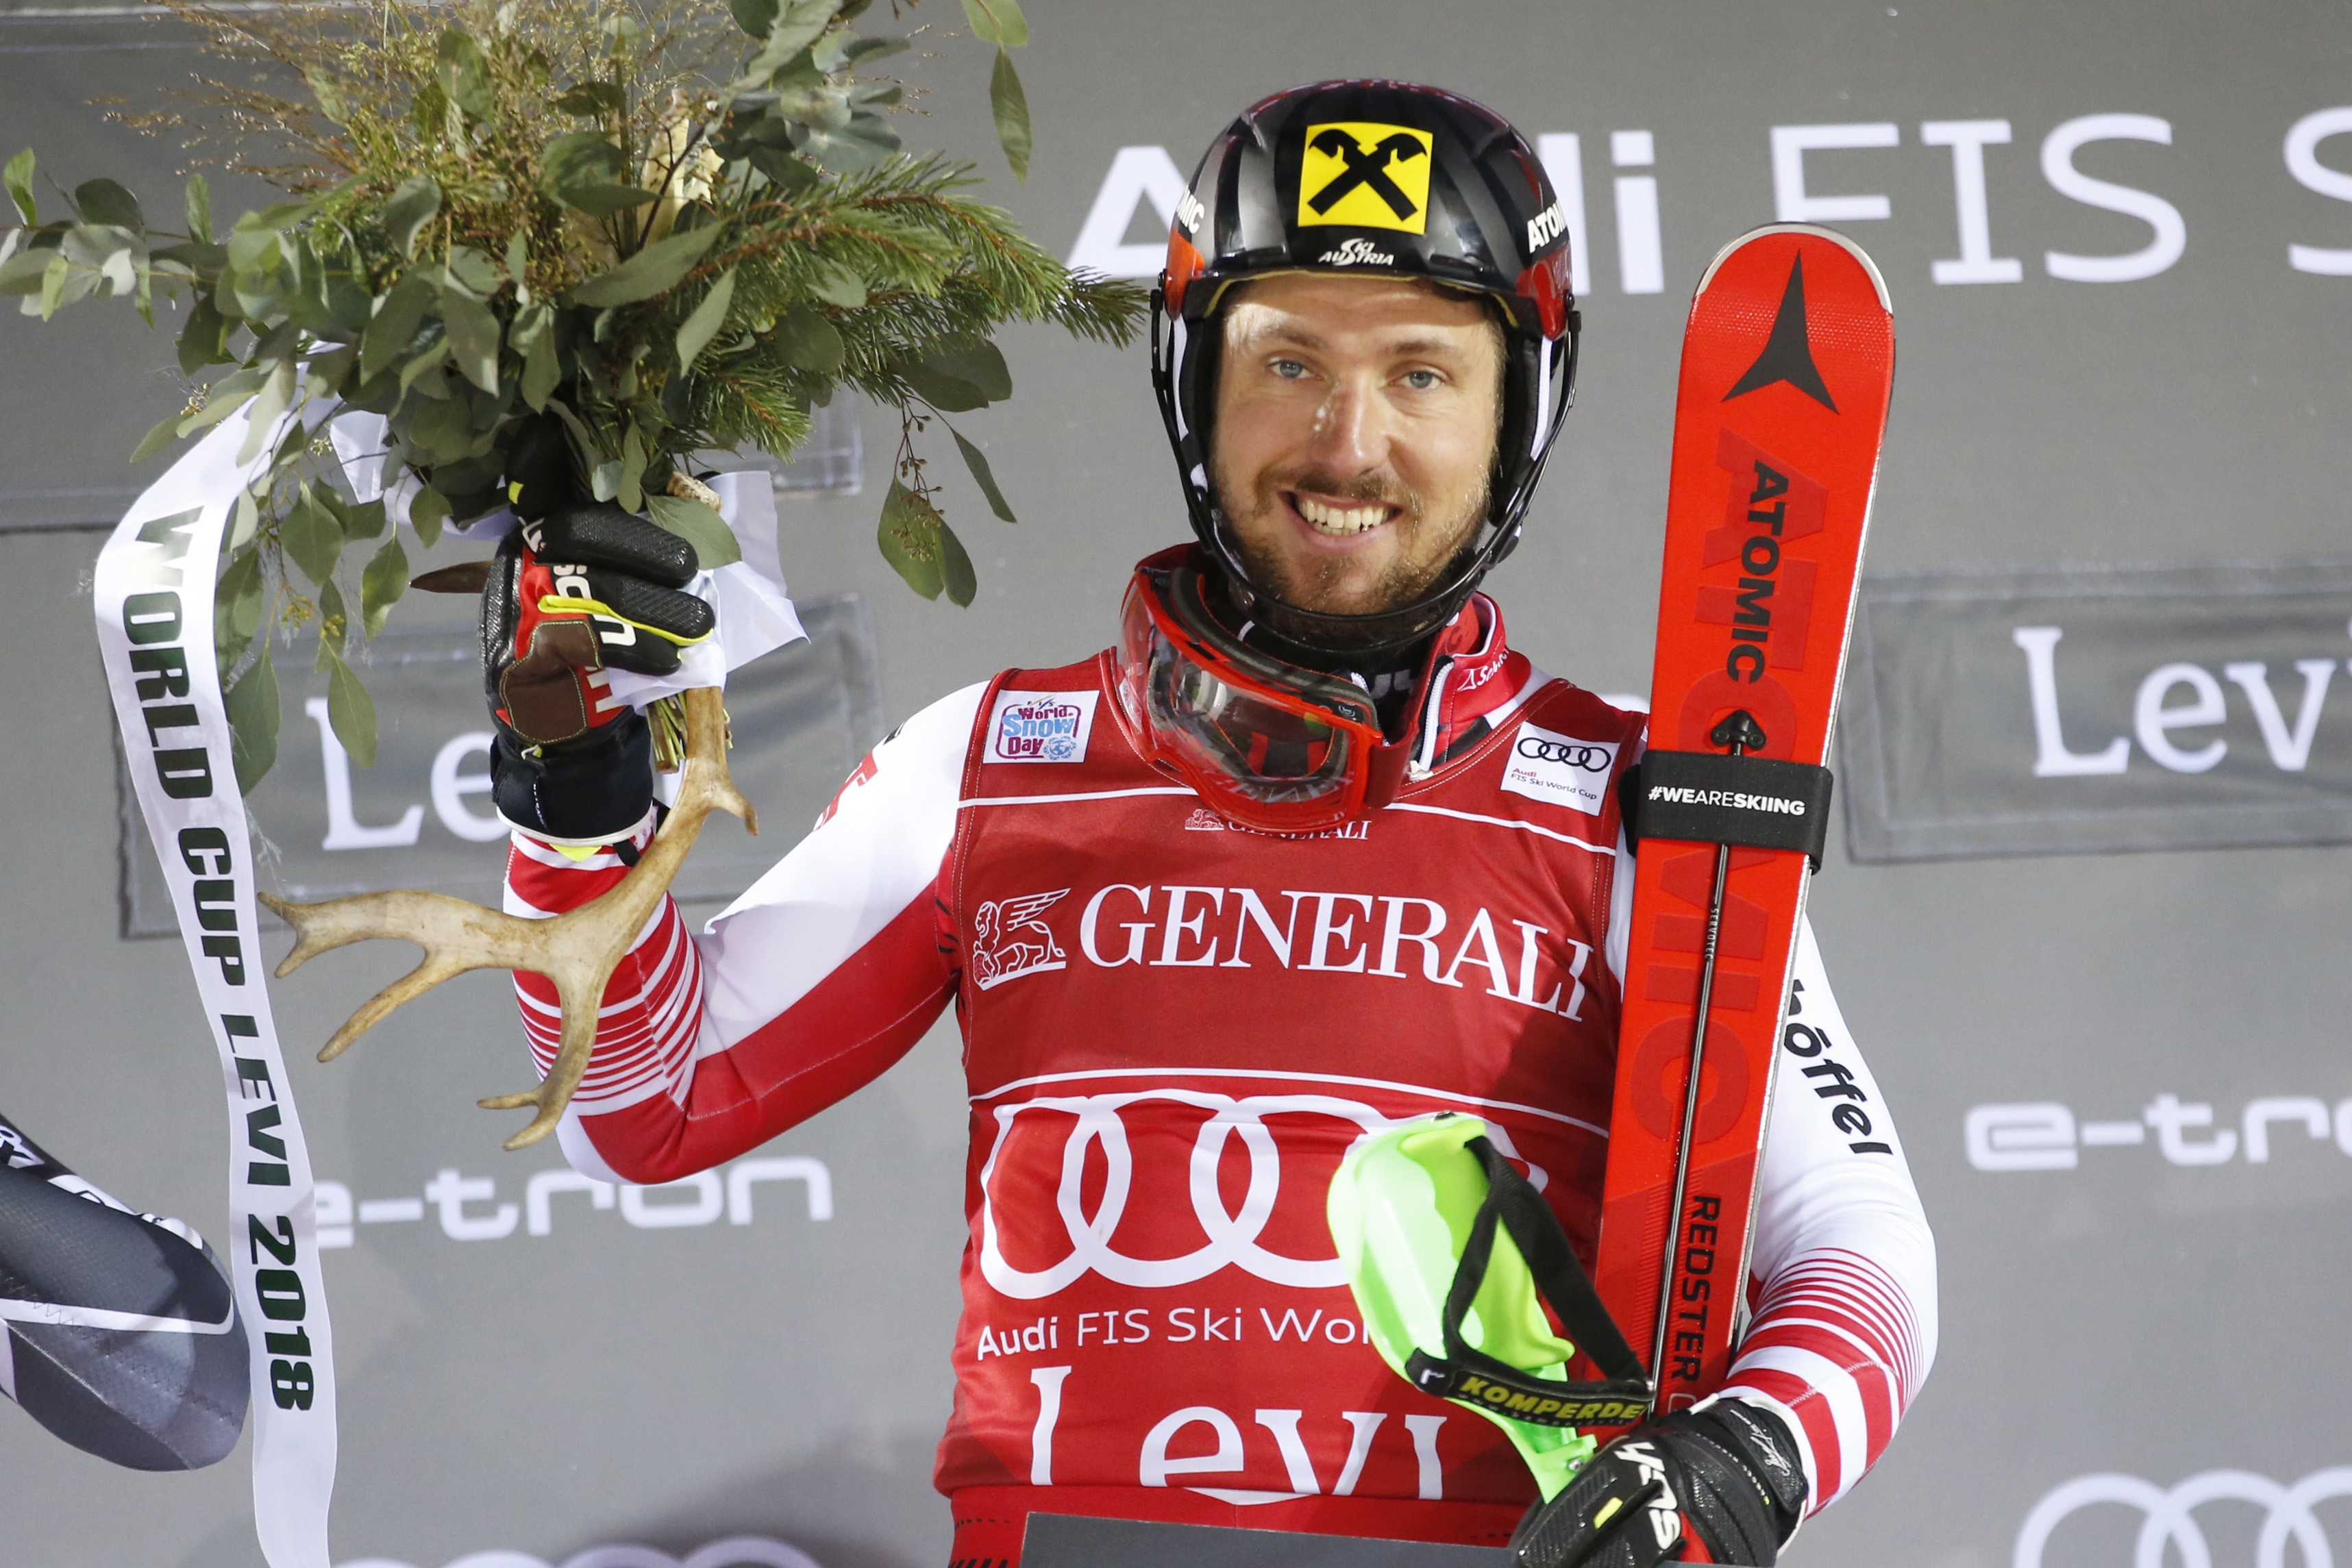 Marcel Hirscher of Austria takes 1st place during the Audi FIS Alpine Ski World Cup Men's Slalom on November 18, 2018 in Levi Finland